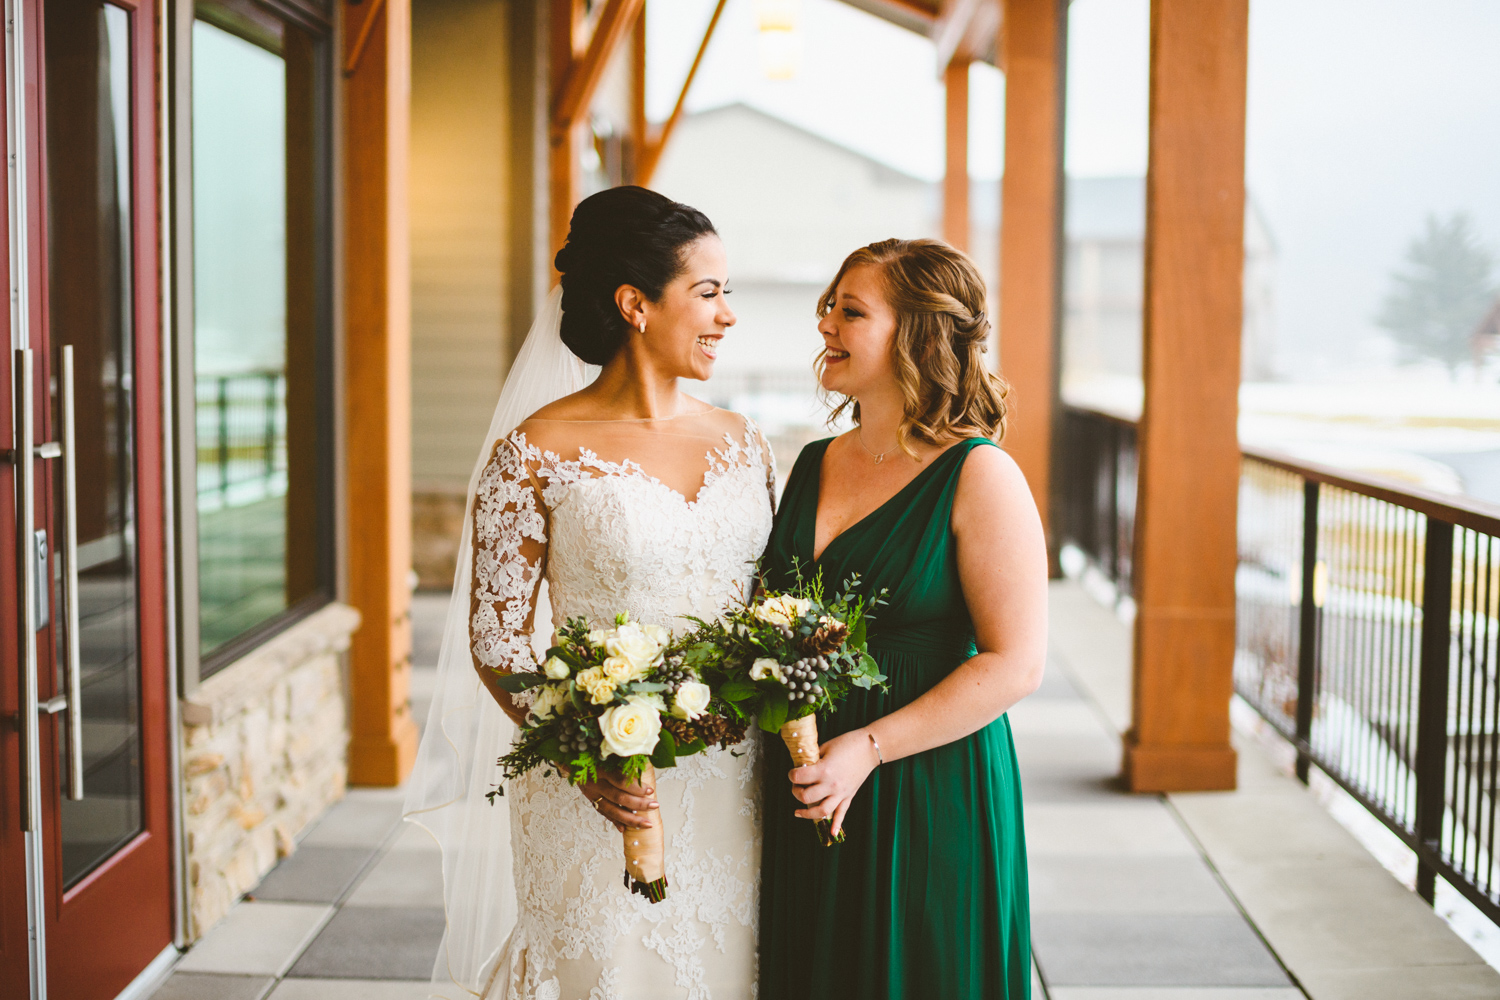 022 - bride and sister of the bride laugh together.jpg